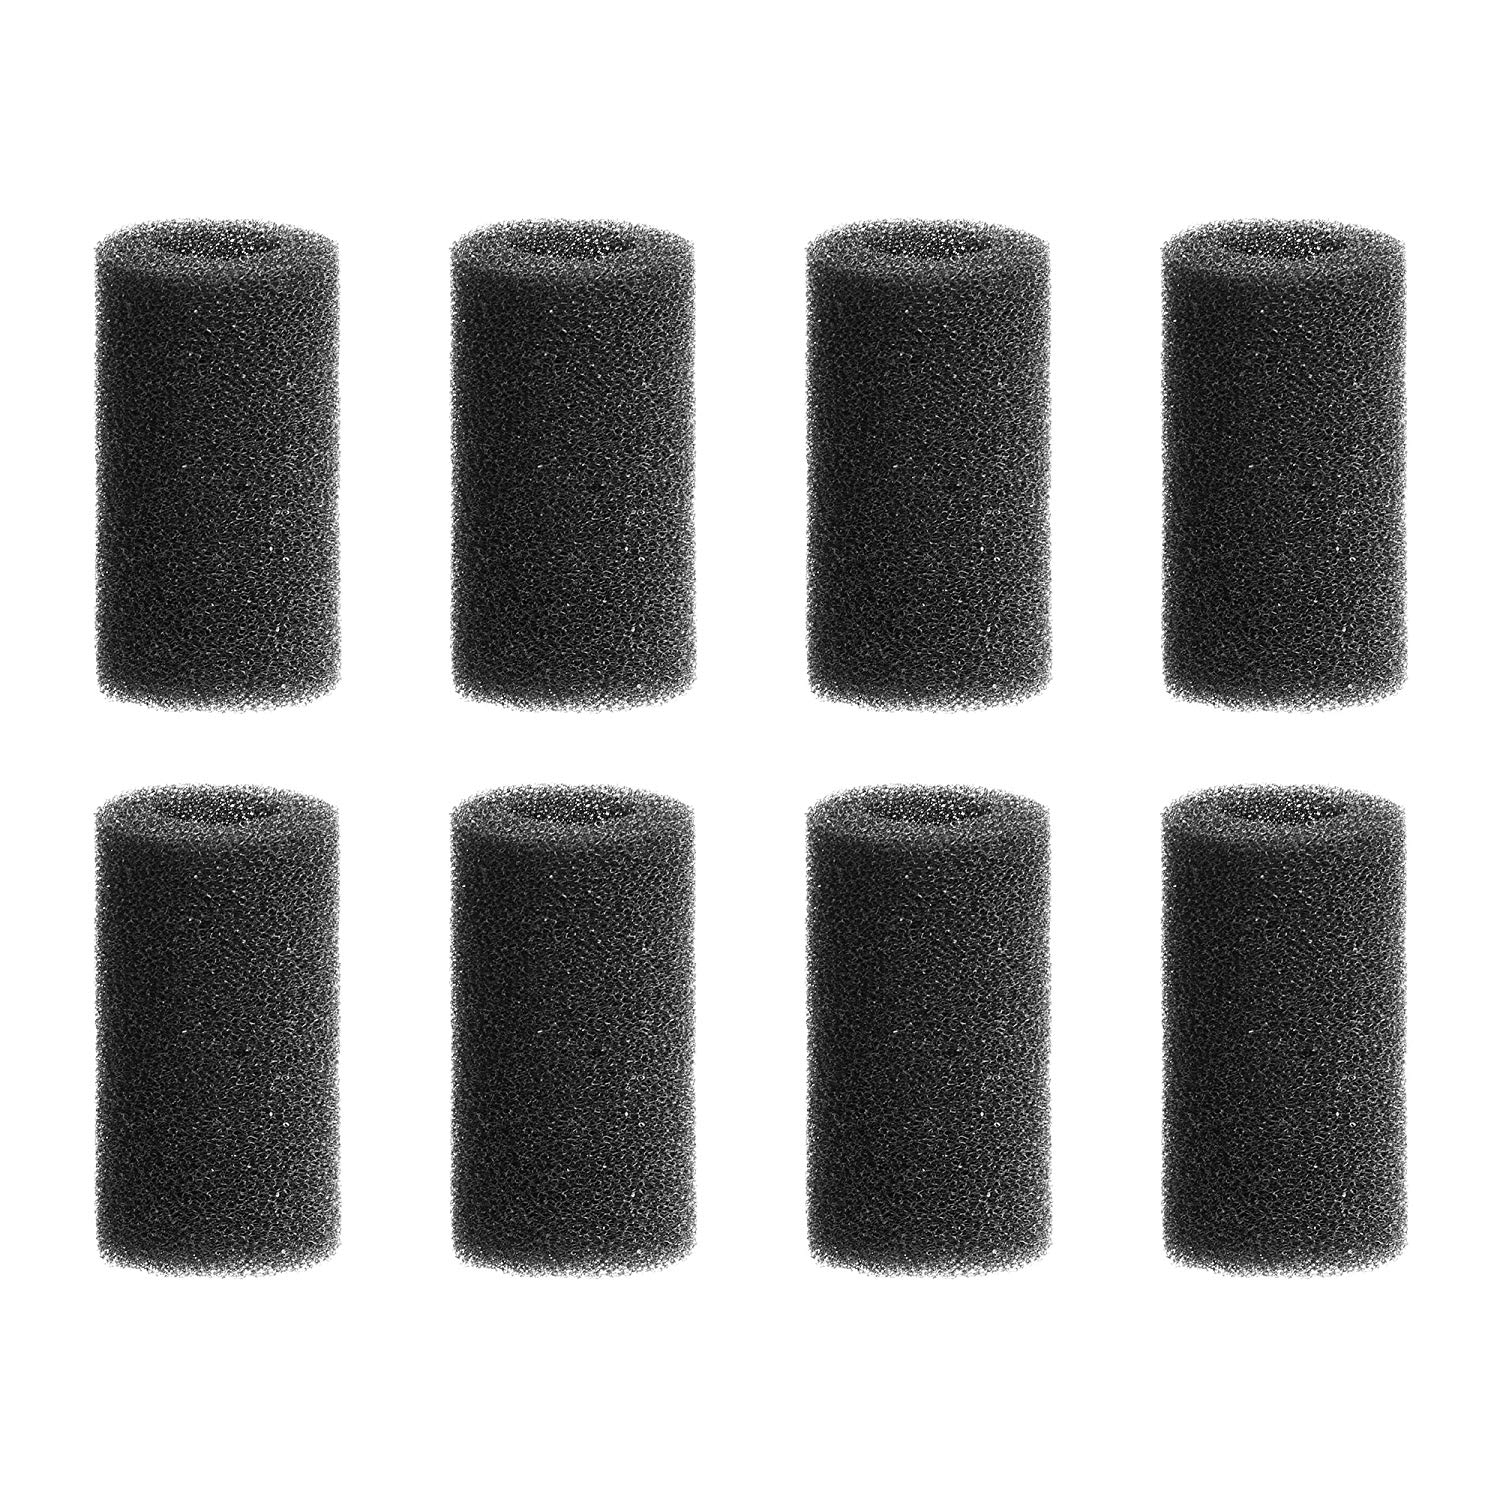 Top Sponge Filters Reviews